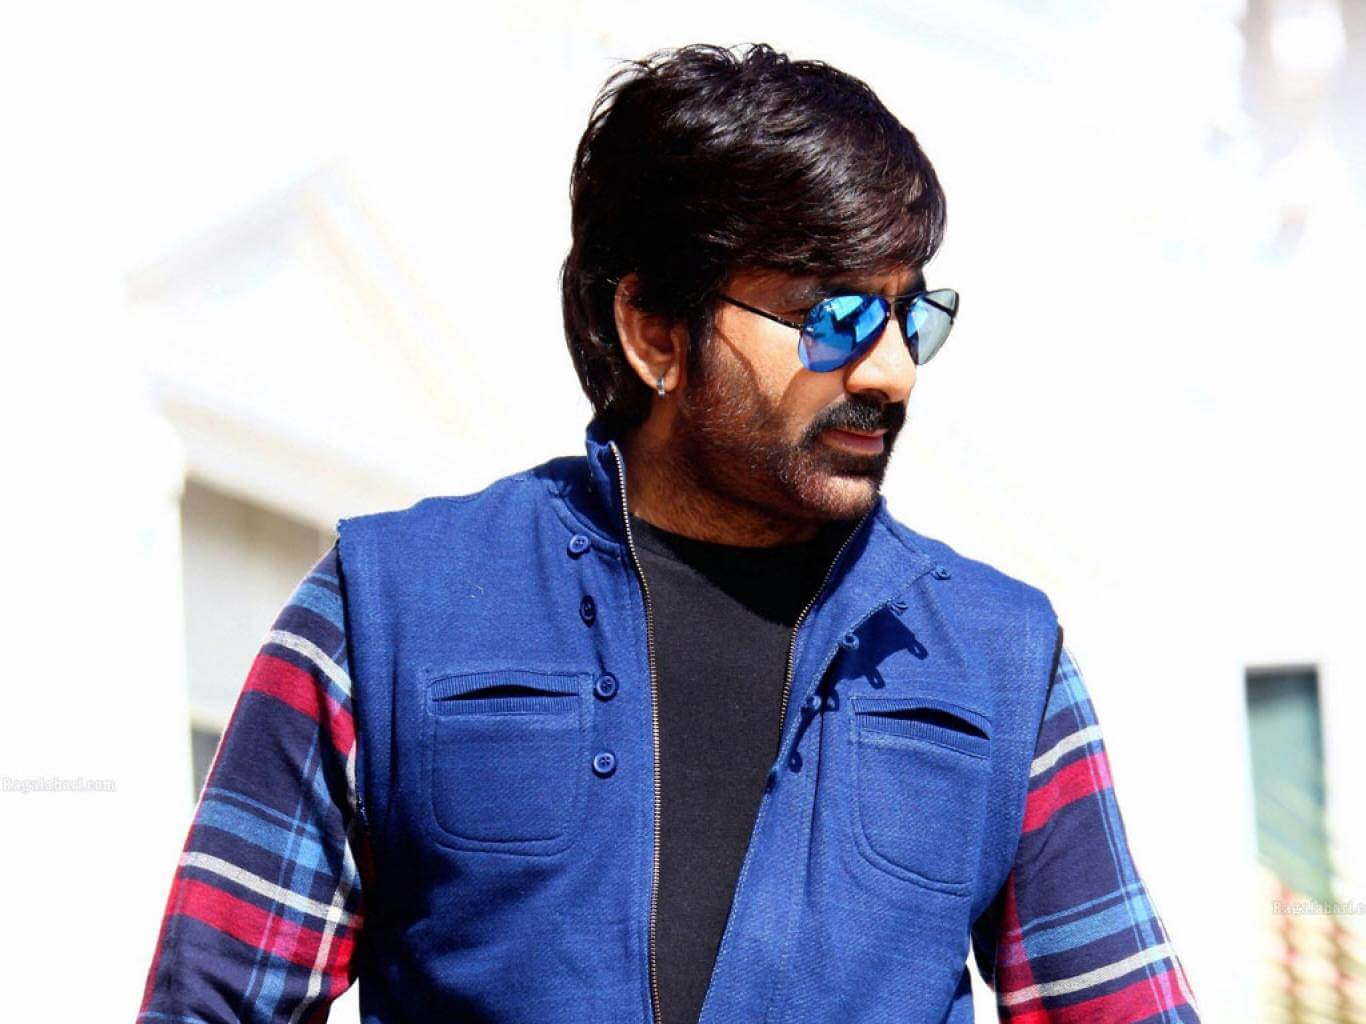 Ravi Teja Movie, Photos(images), Date Of Birth, Family, Brother, Height, Biography, Net Worth, Age, Wife, Details, Education, Instagram, Twitter, Wiki, Imdb, Facebook, Hairstyle, Youtube (59)